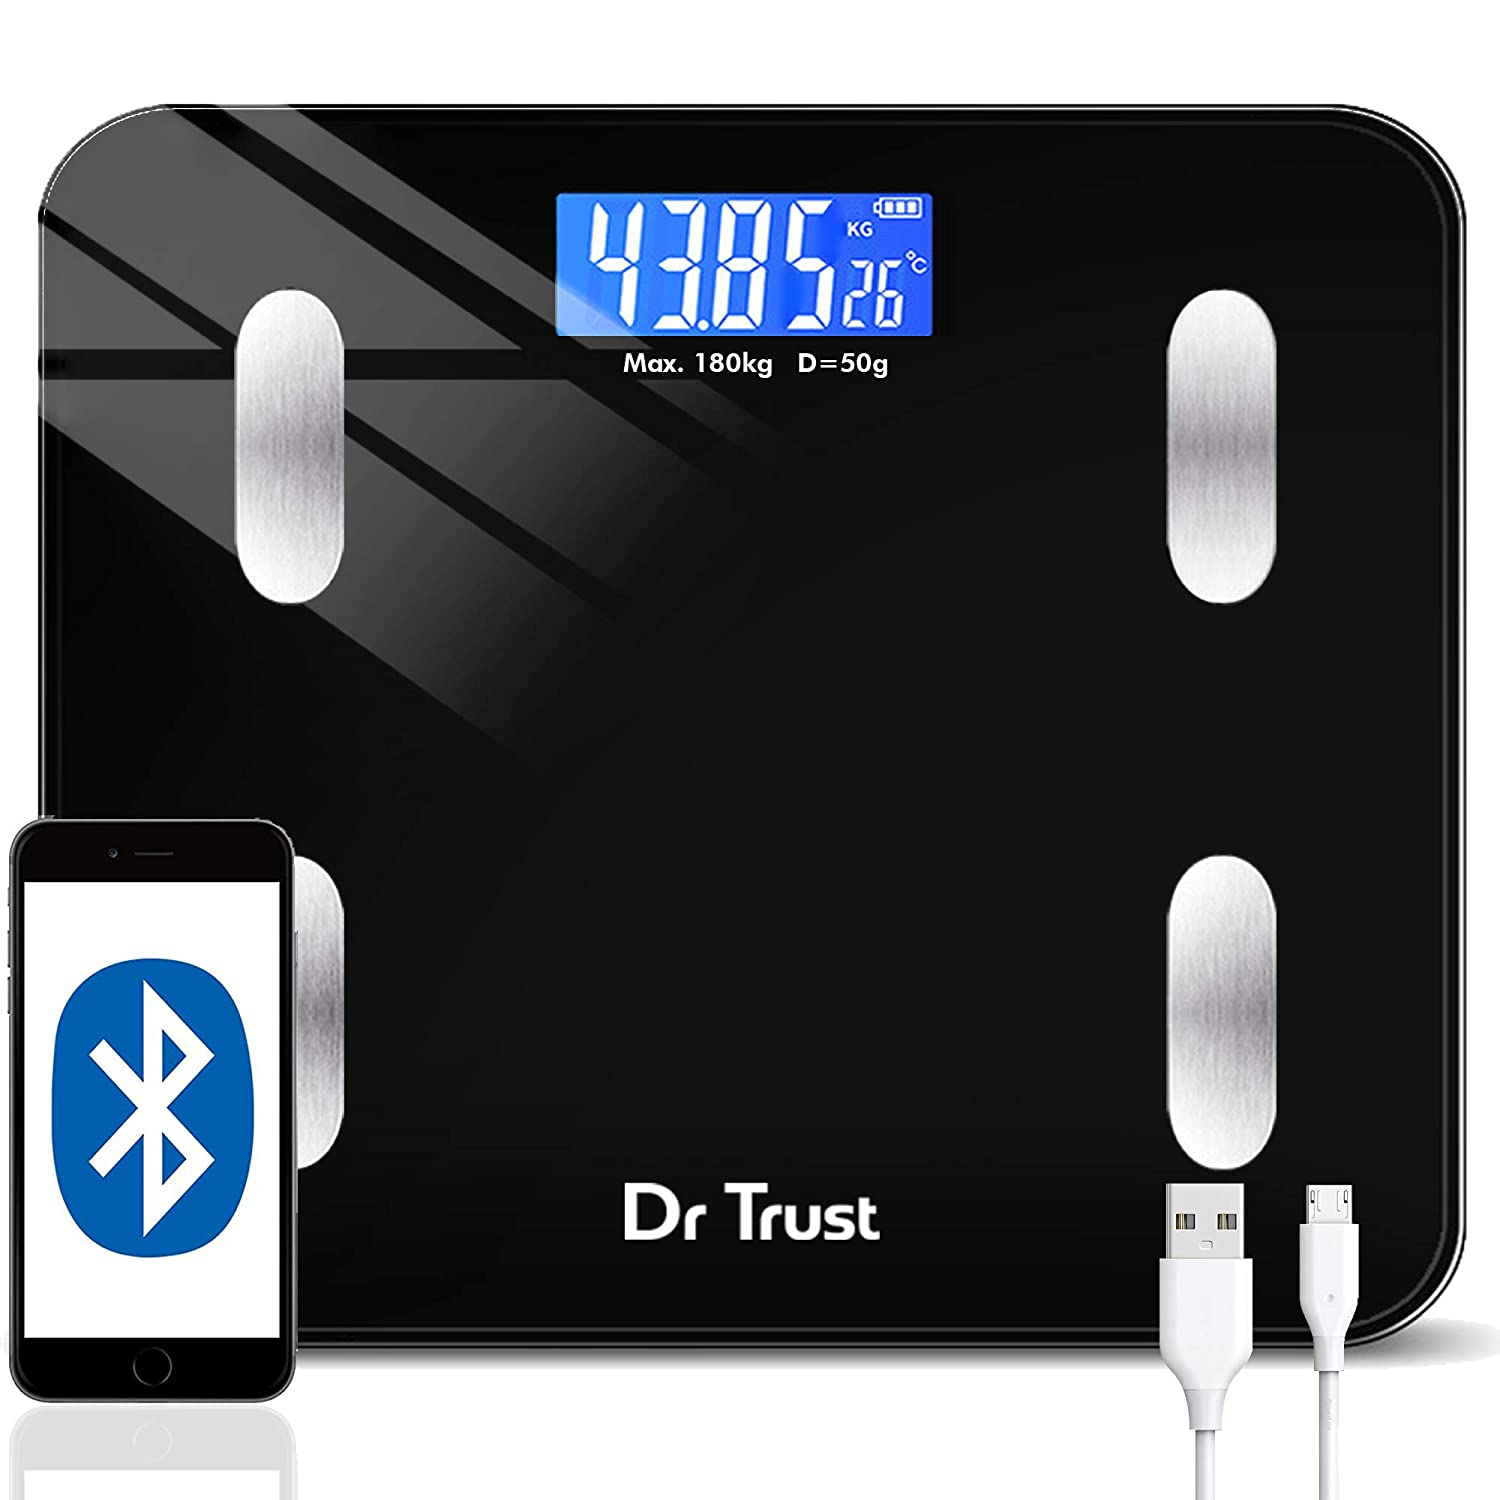 Dr Trust (USA) Digital Smart Electronic Rechargeable Bluetooth Fitness Body Composition Monitor